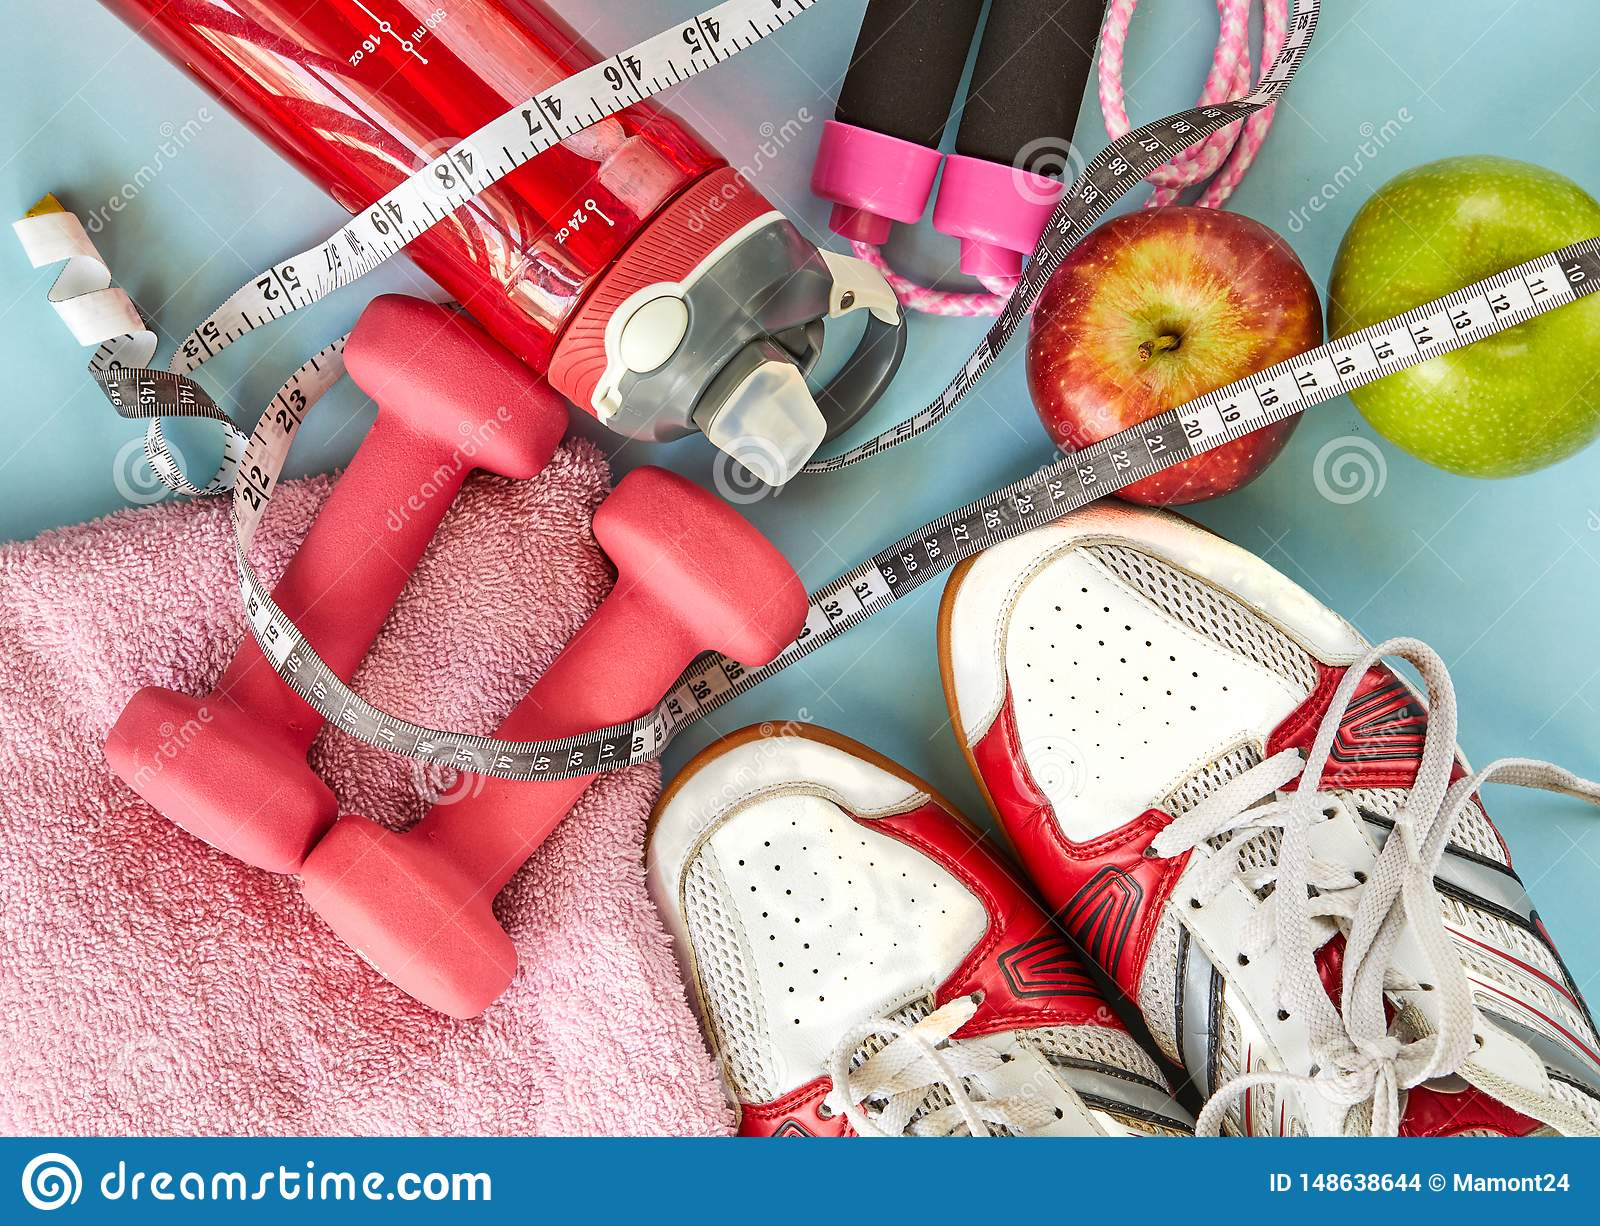 ruits, dumbbells, water bottle, rope, sneakers and meter on a blue background